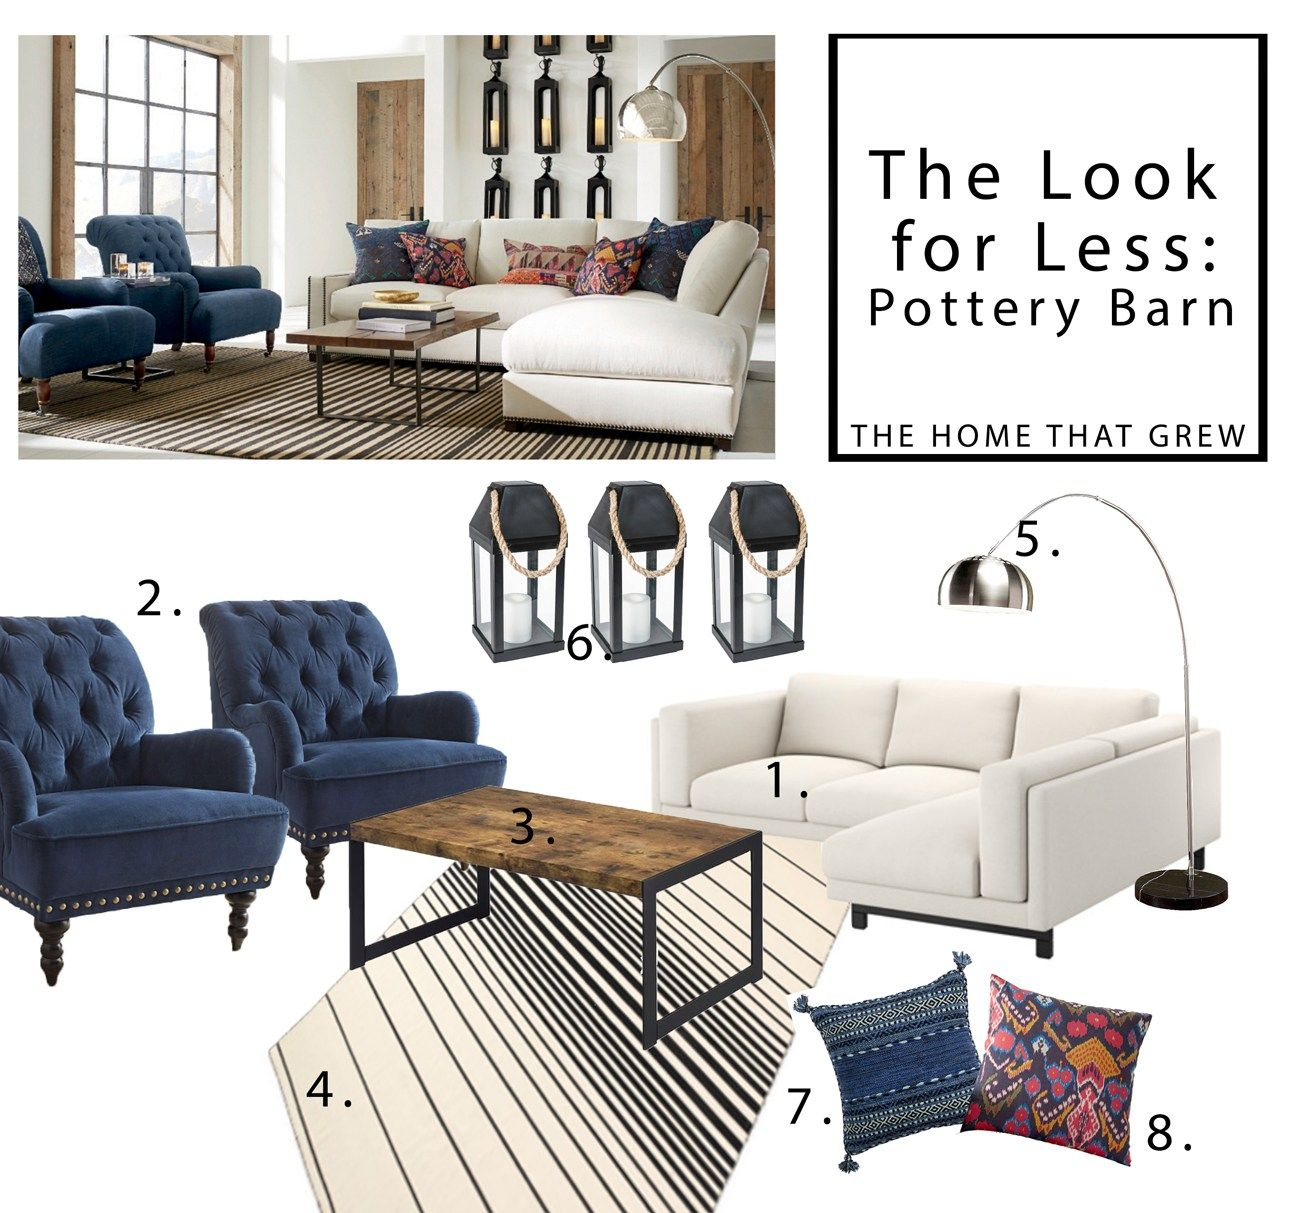 Get The Look For Less Pottery Barn Cheap Bedroom Furniture Pottery Barn Furniture Pottery Barn Look